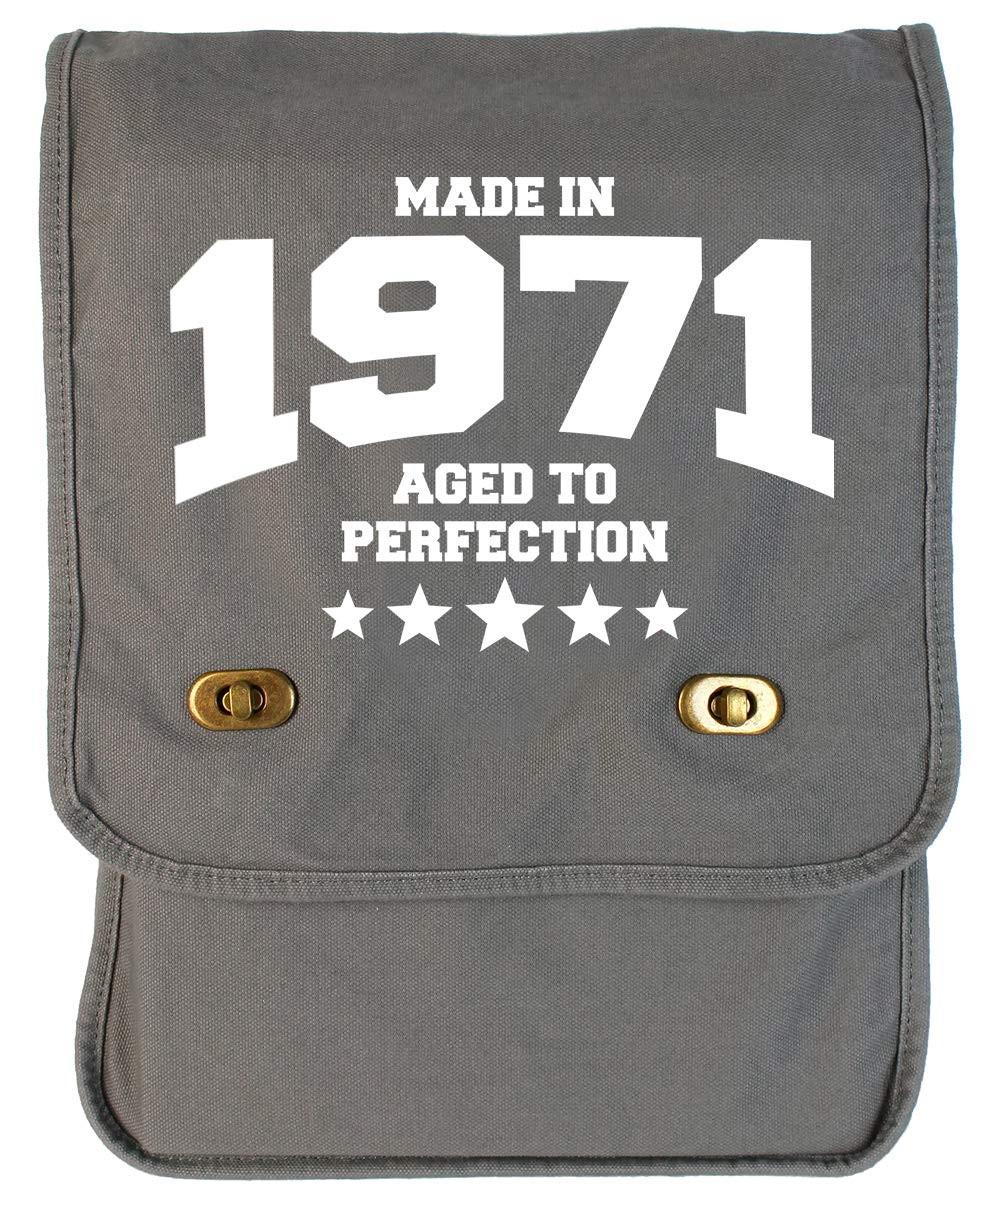 1971 Grey Brushed Canvas Messenger Bag Tenacitee Athletic Aged to Perfection